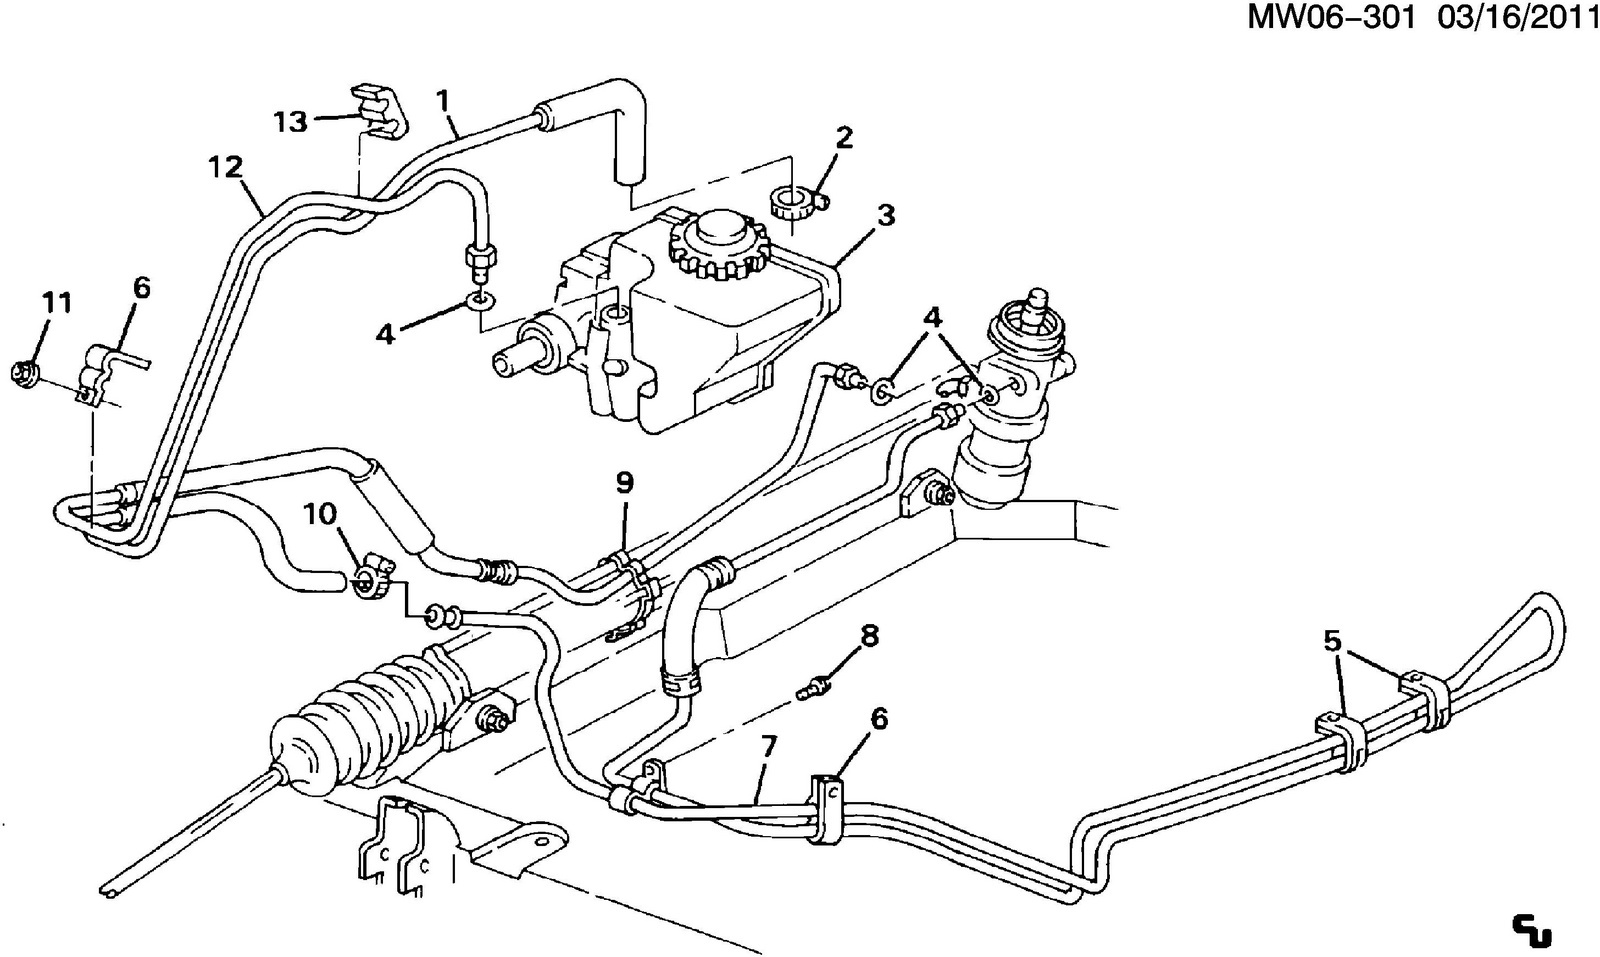 Discussion T16816 ds577757 on 2001 nissan vacuum diagrams